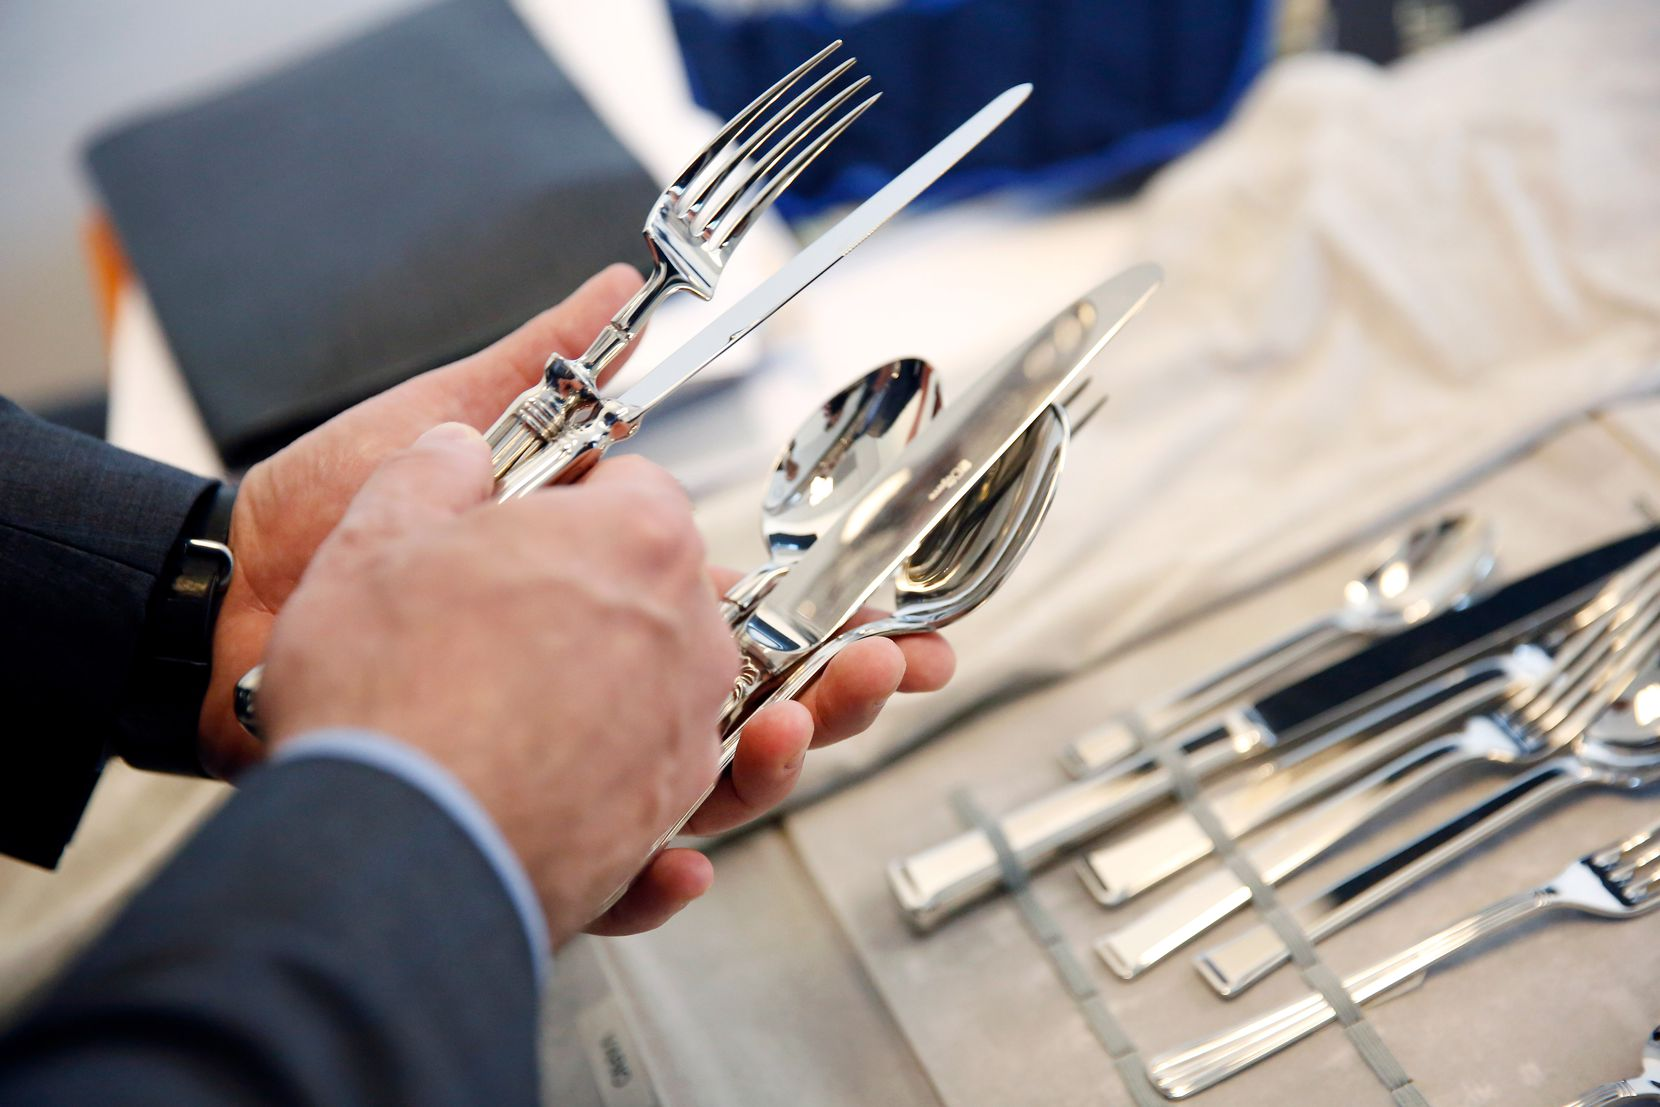 Anthony Cournia selects flatware to take to the French Room for consideration. After a month and a half of look, he and Michael Ehlert are zeroing on what they want. (Tom Fox/The Dallas Morning News)